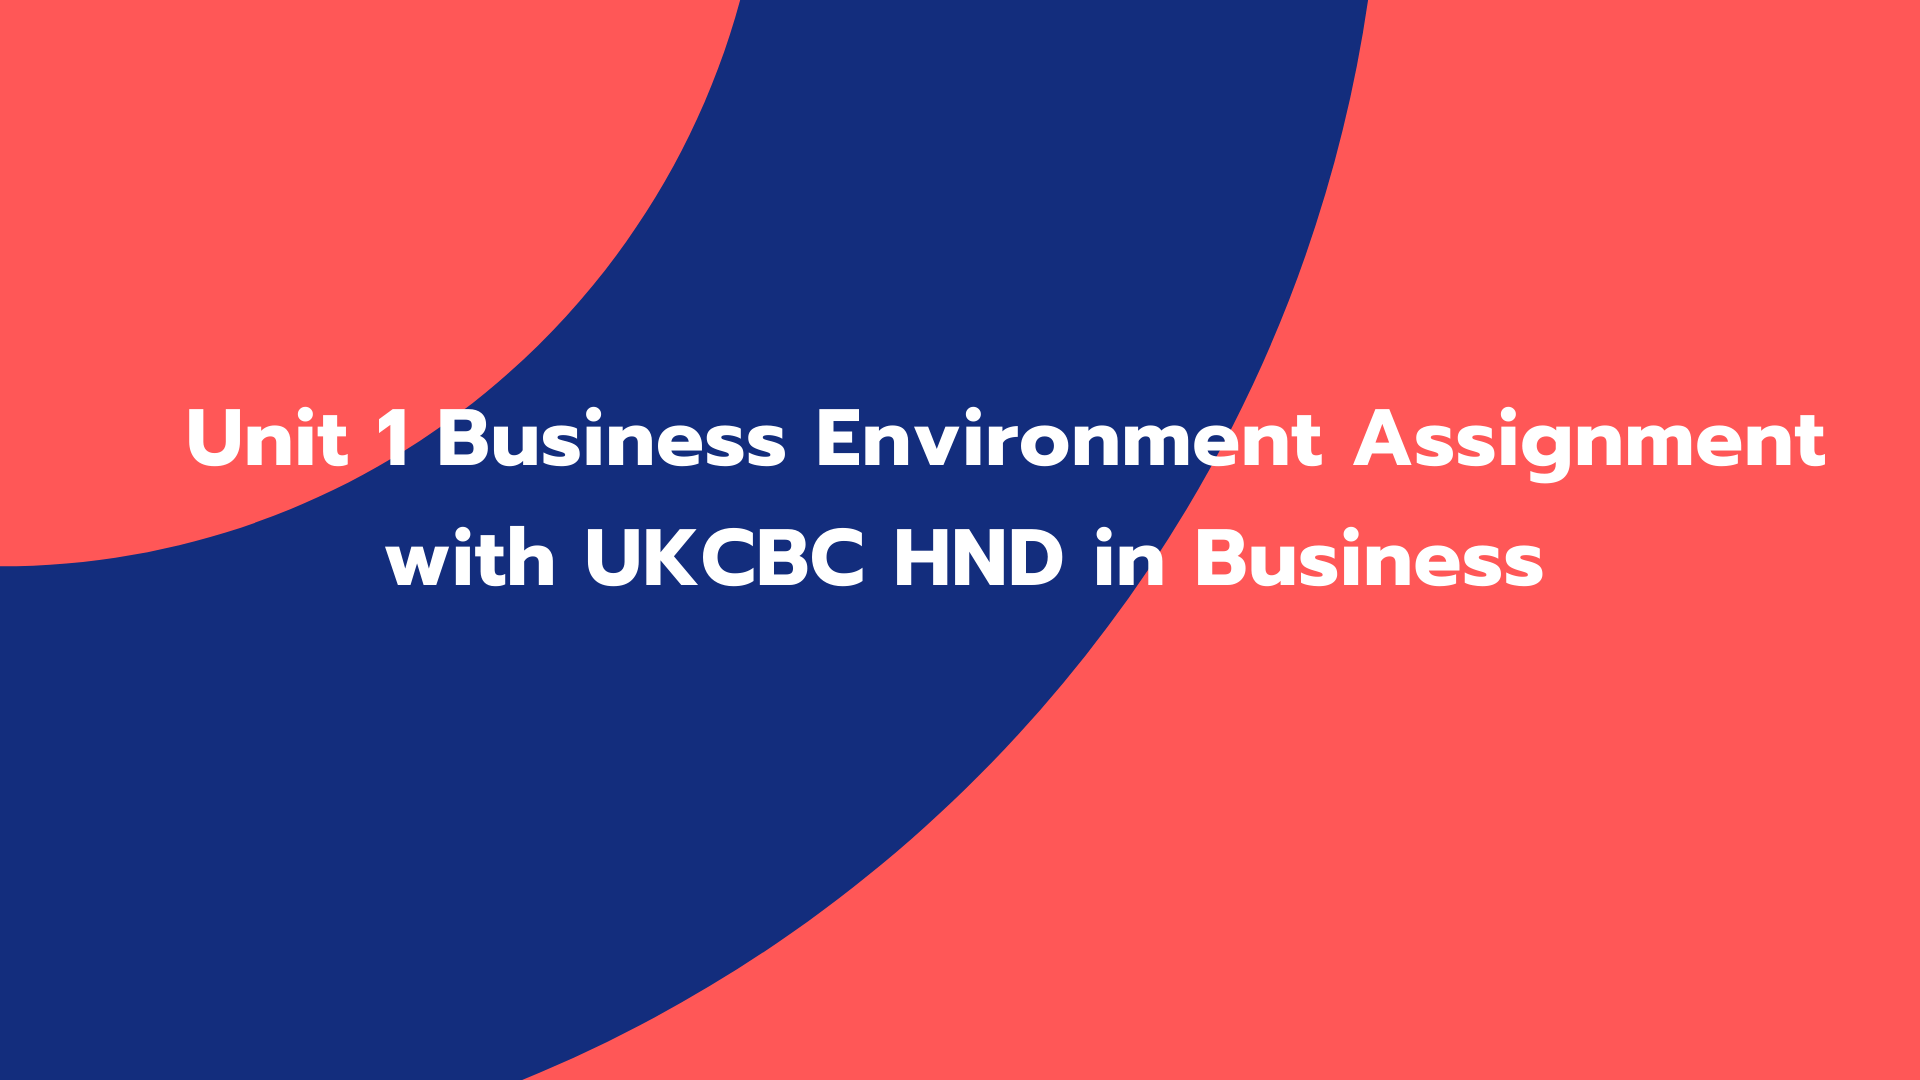 Unit 1 Business Environment Assignment with UKCBC HND in Business